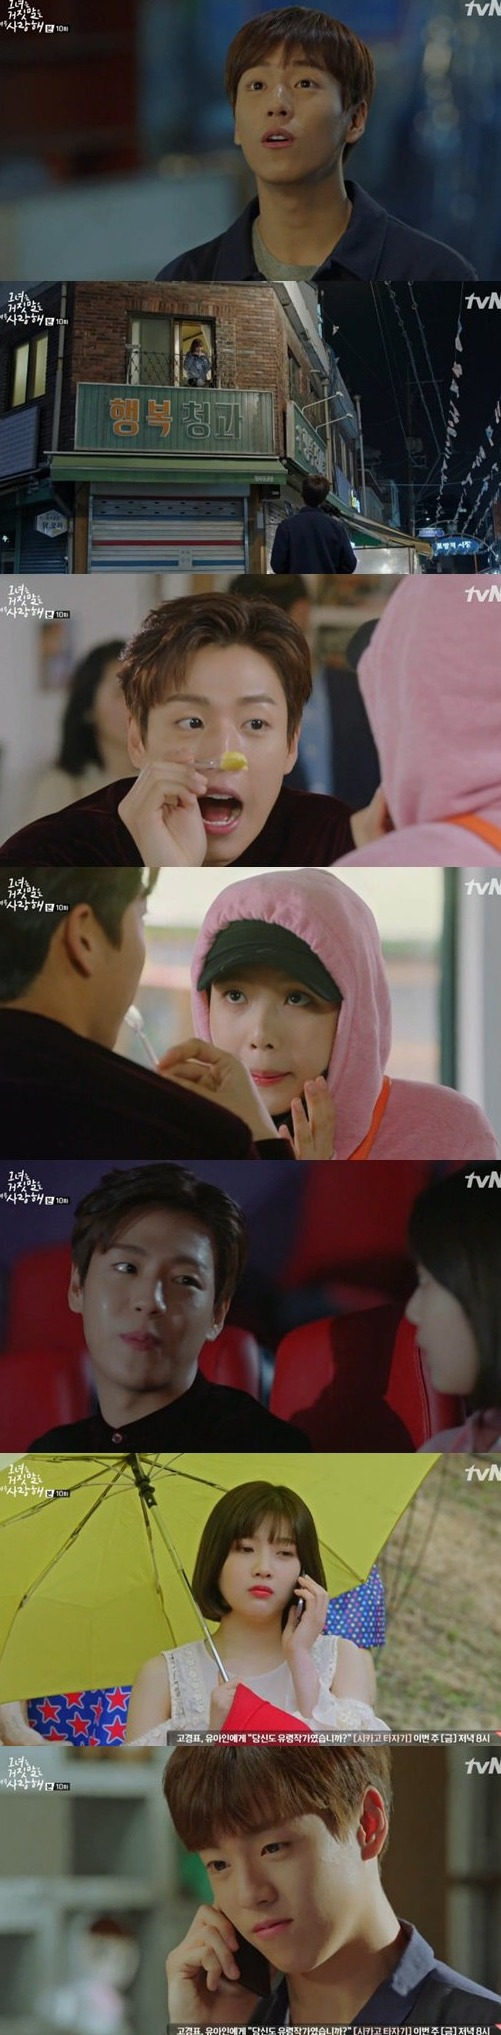 [Spoiler] Added episode 10 captures for the Korean drama 'The Liar and His Lover'